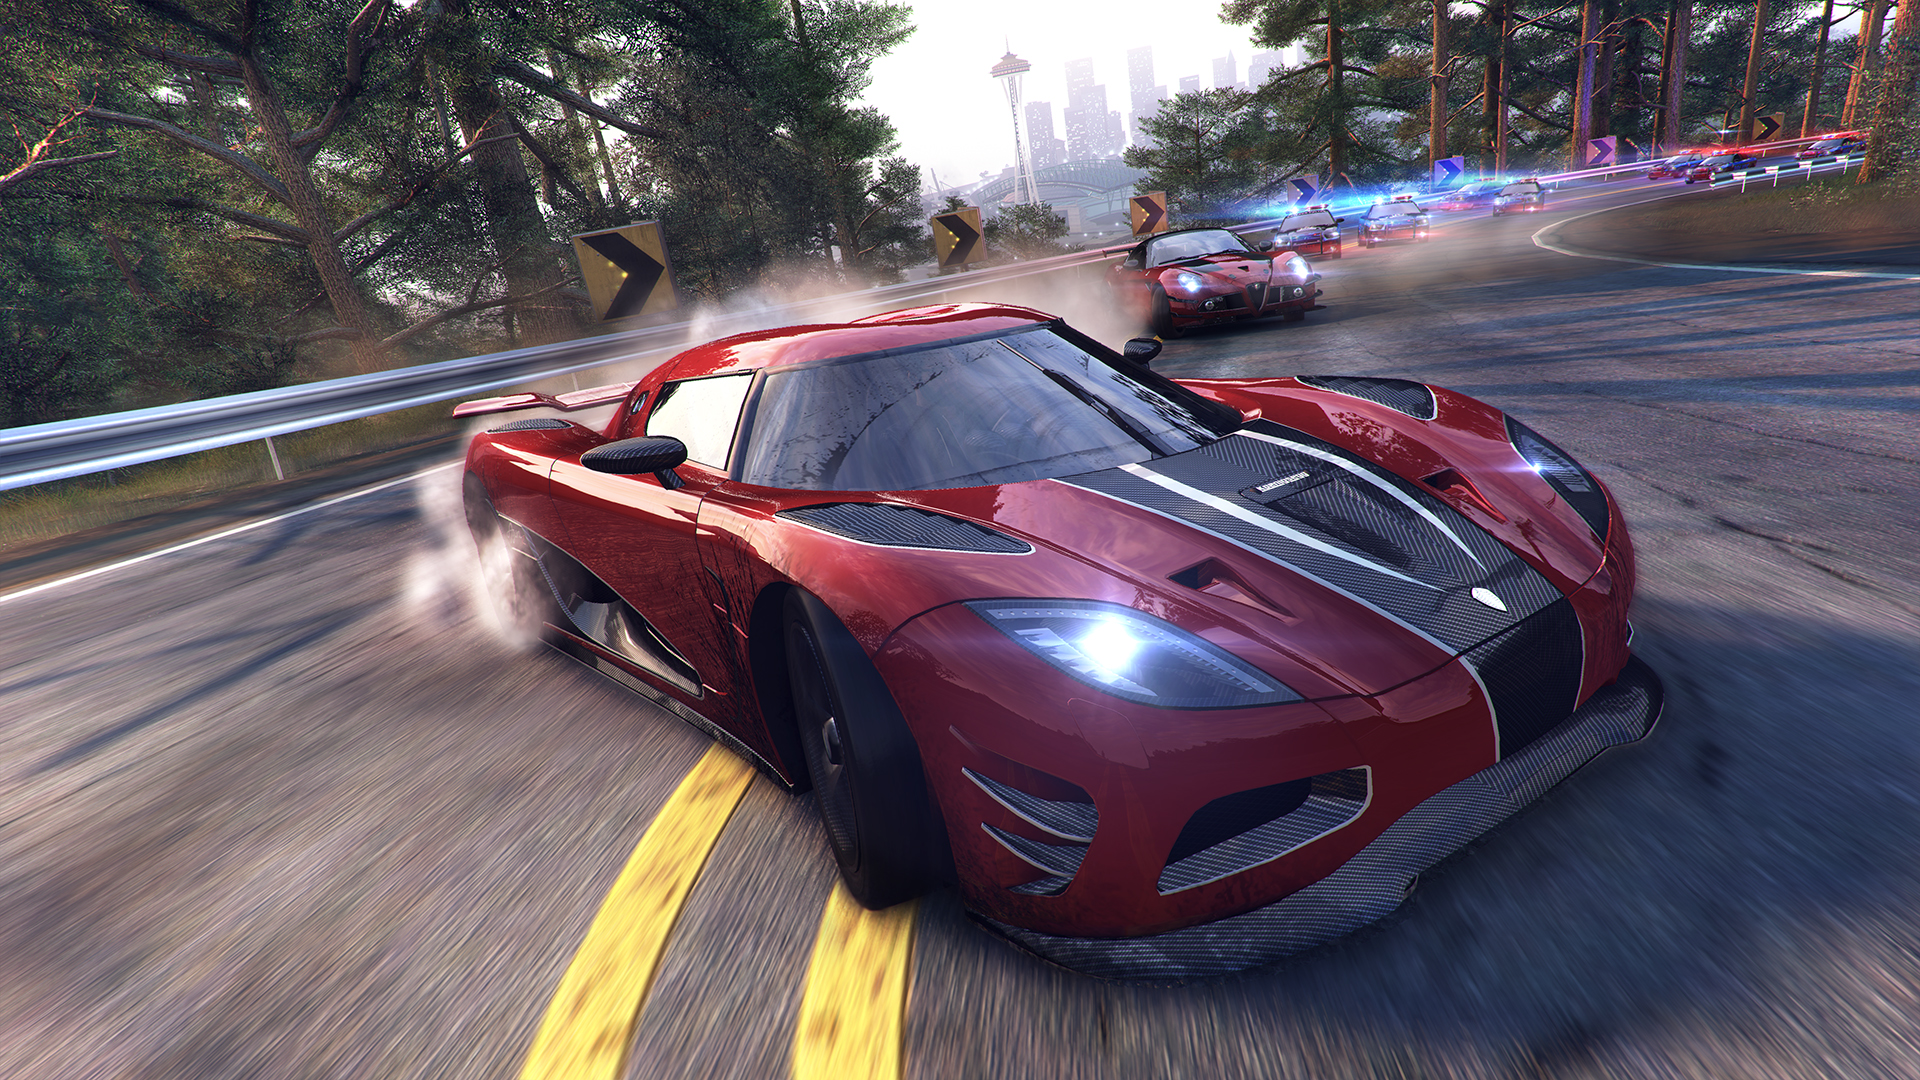 New content and gameplay fixes coming in The Crew's update this week